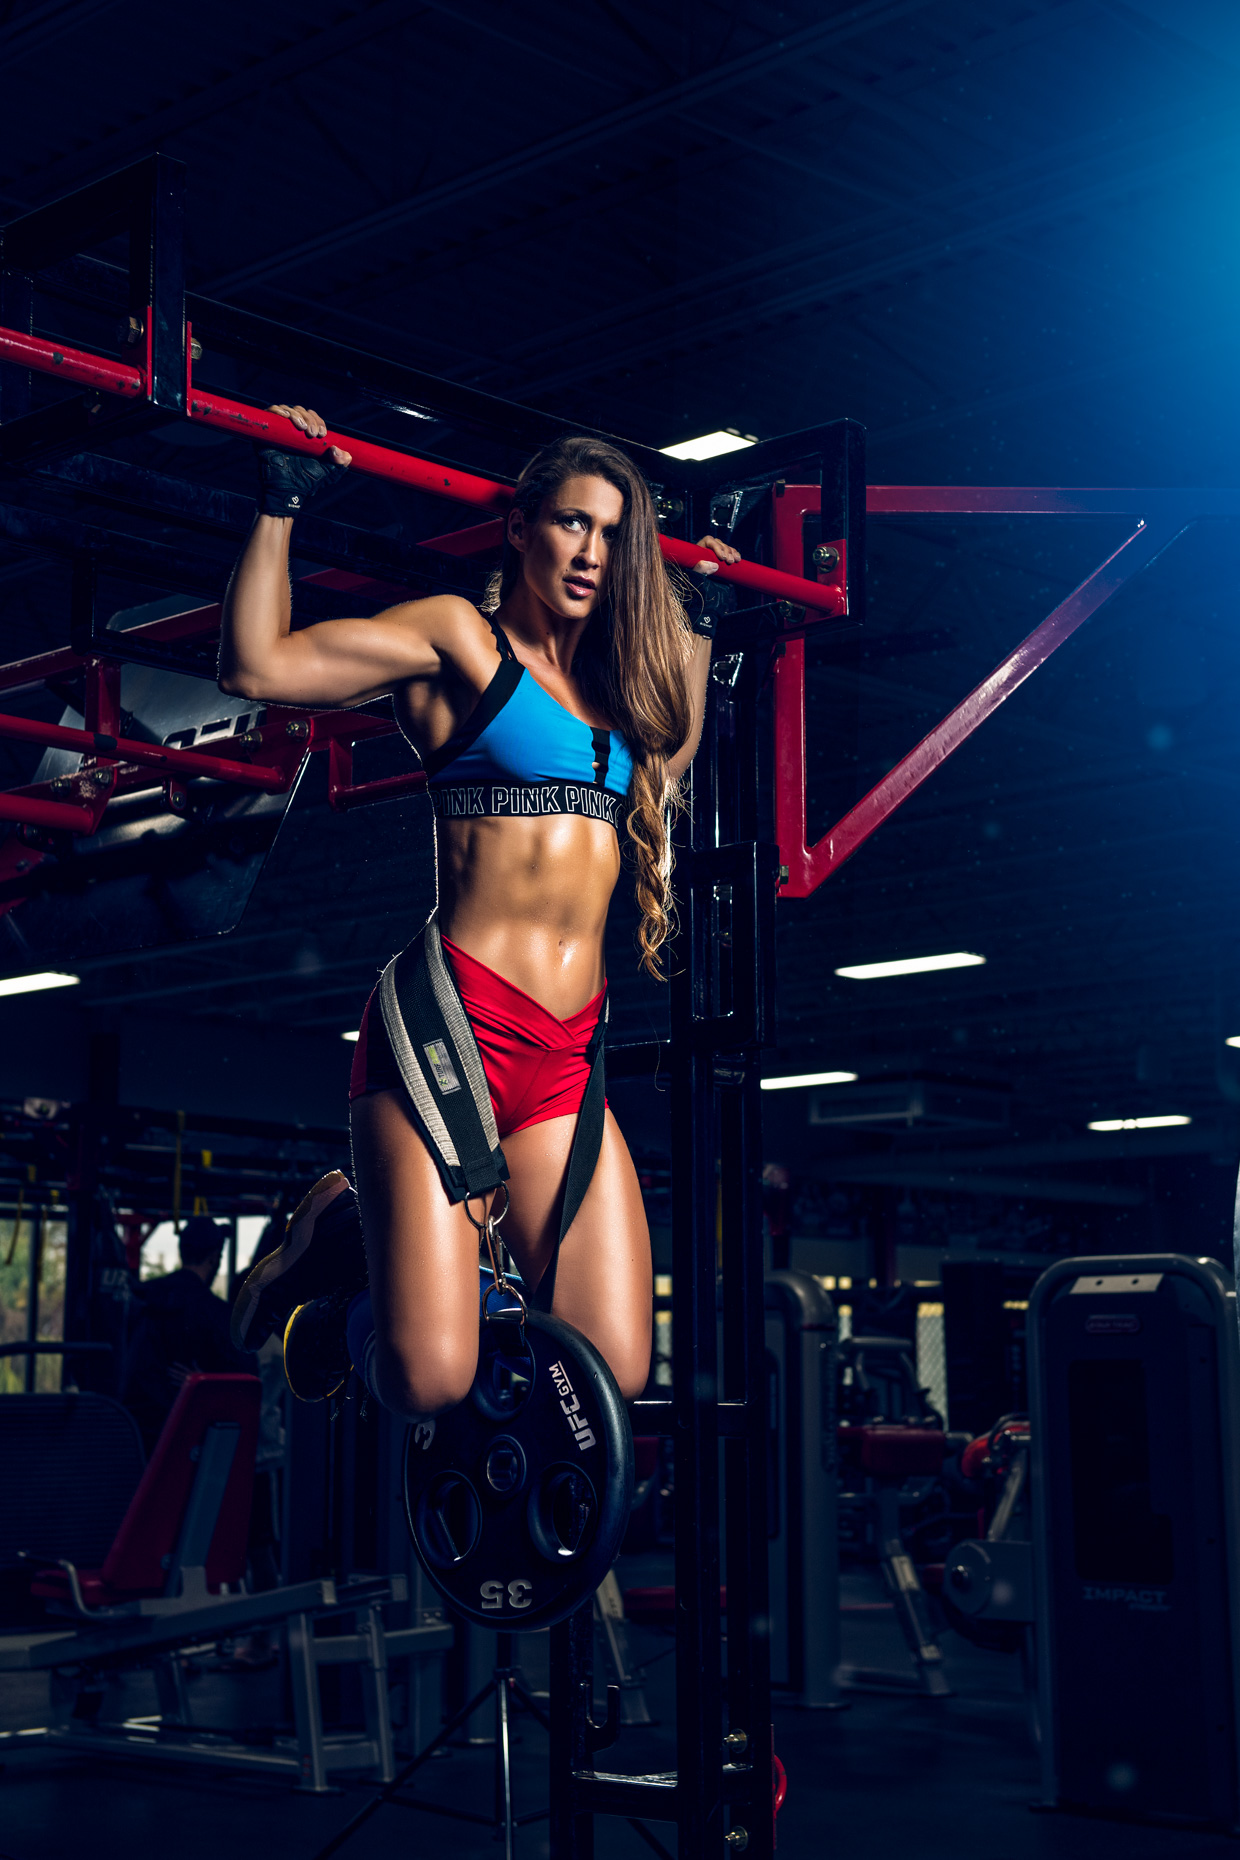 Anais Zanotti - Miami Fitness Model - James Woodley - Commercial Fitness Photographer - Miami FL